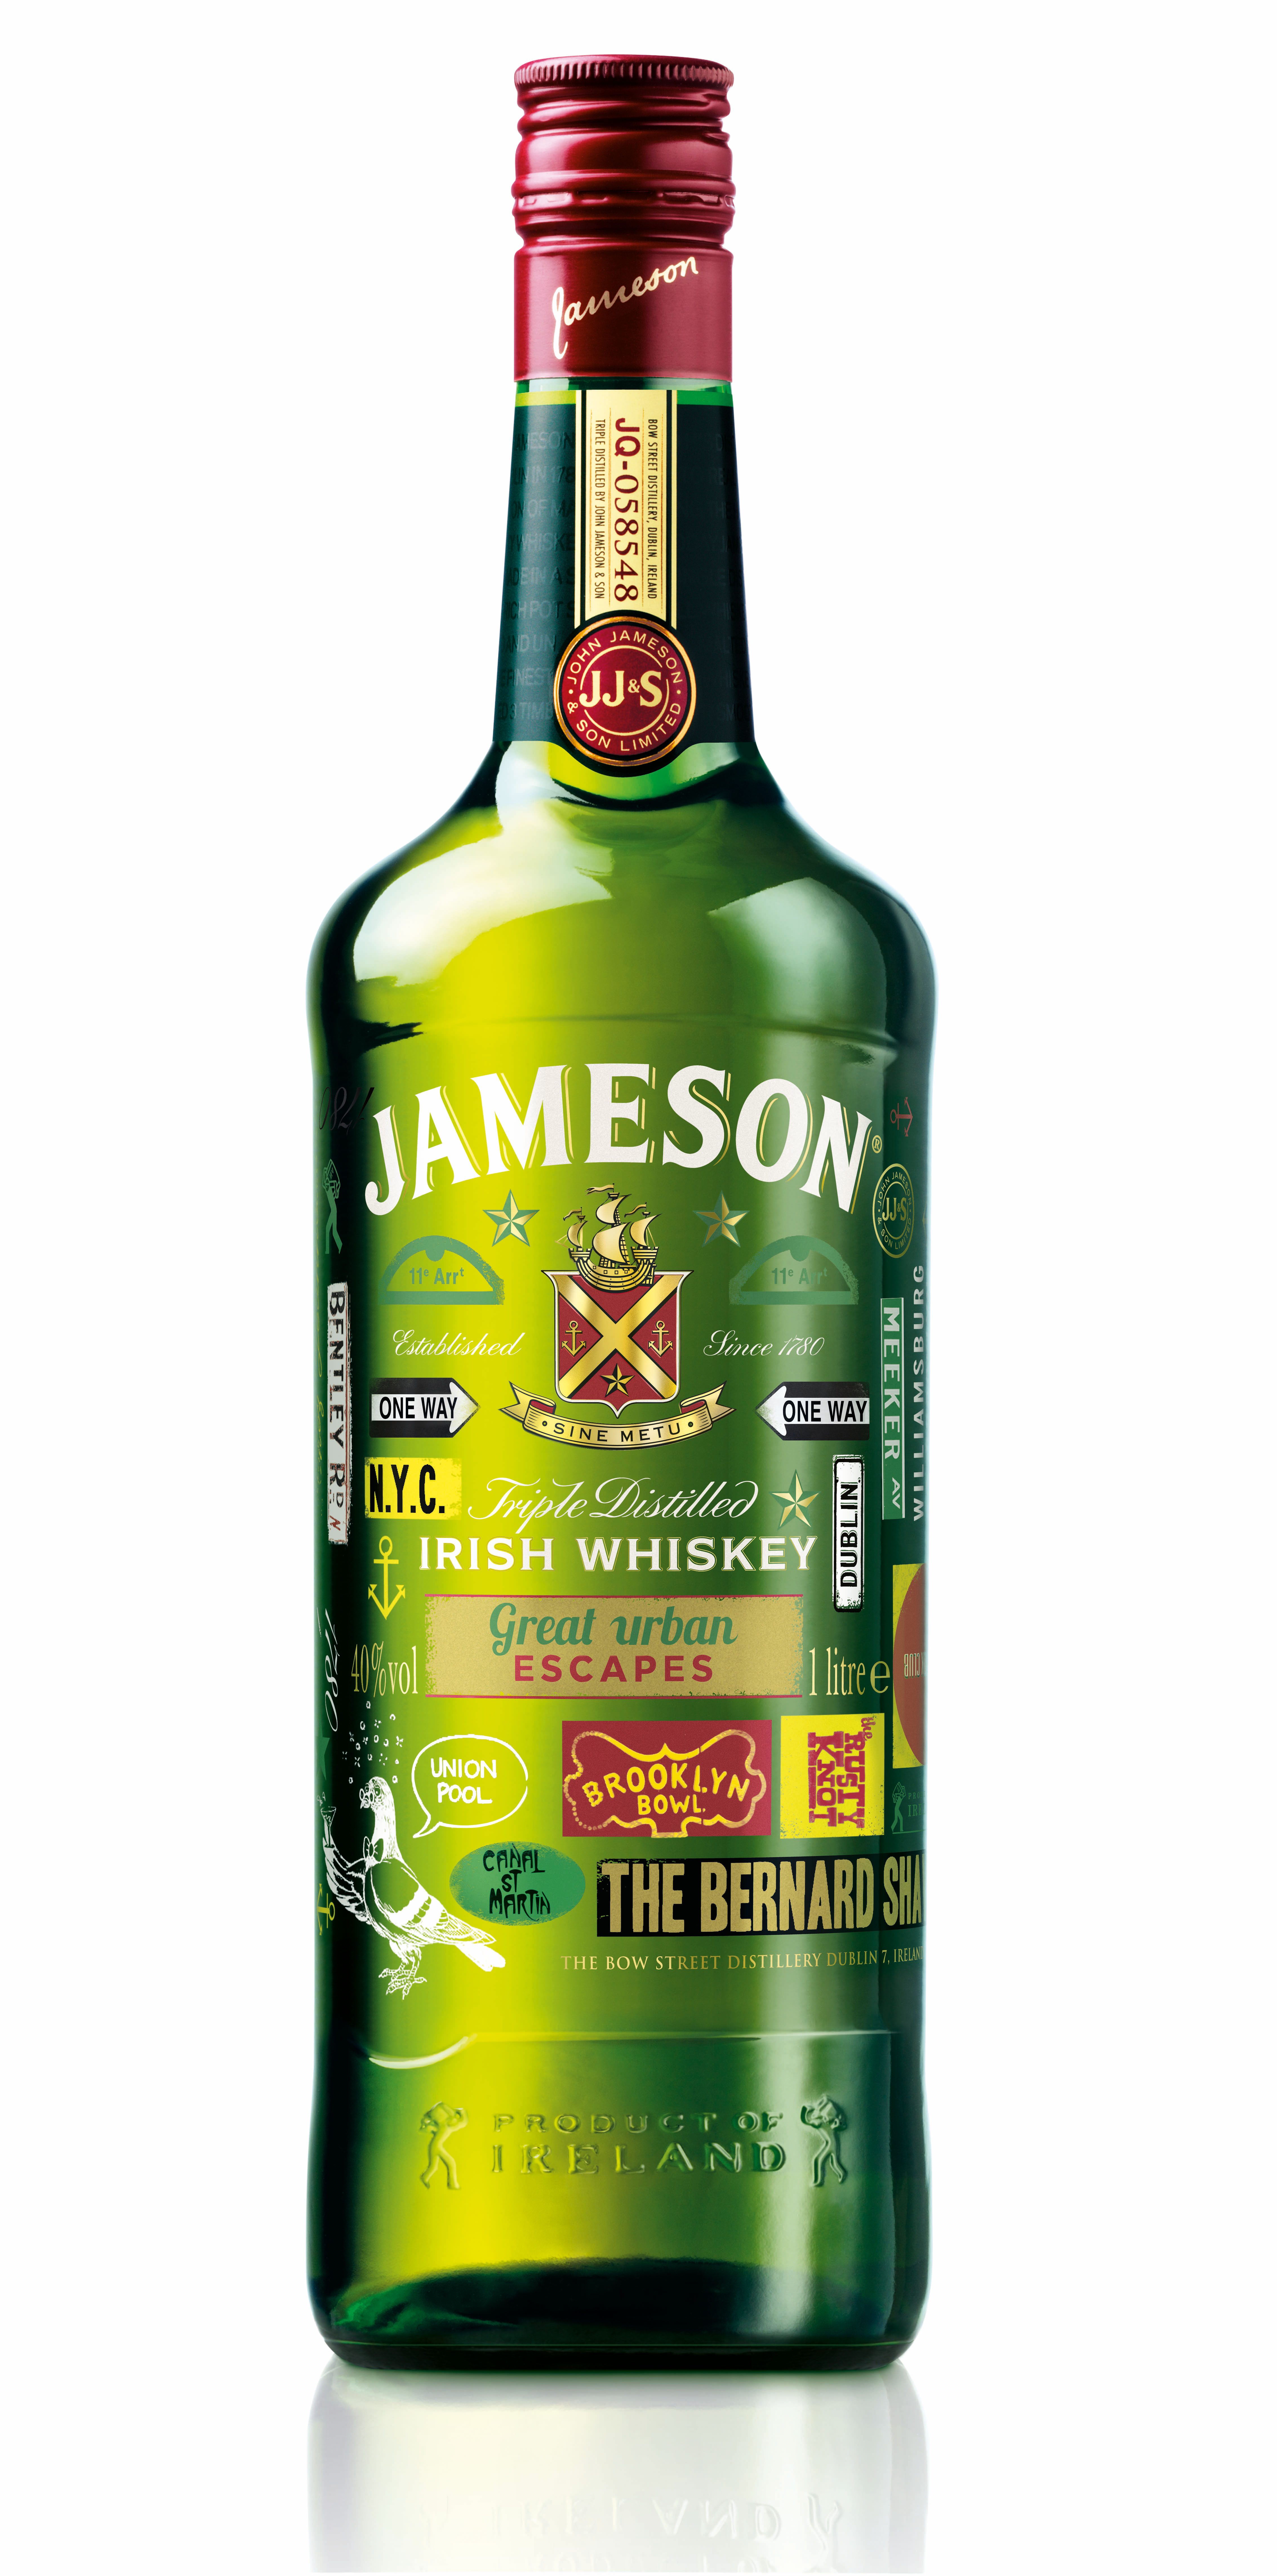 Image search  Jameson Irish WhiskeyJameson Irish Whiskey Bottle